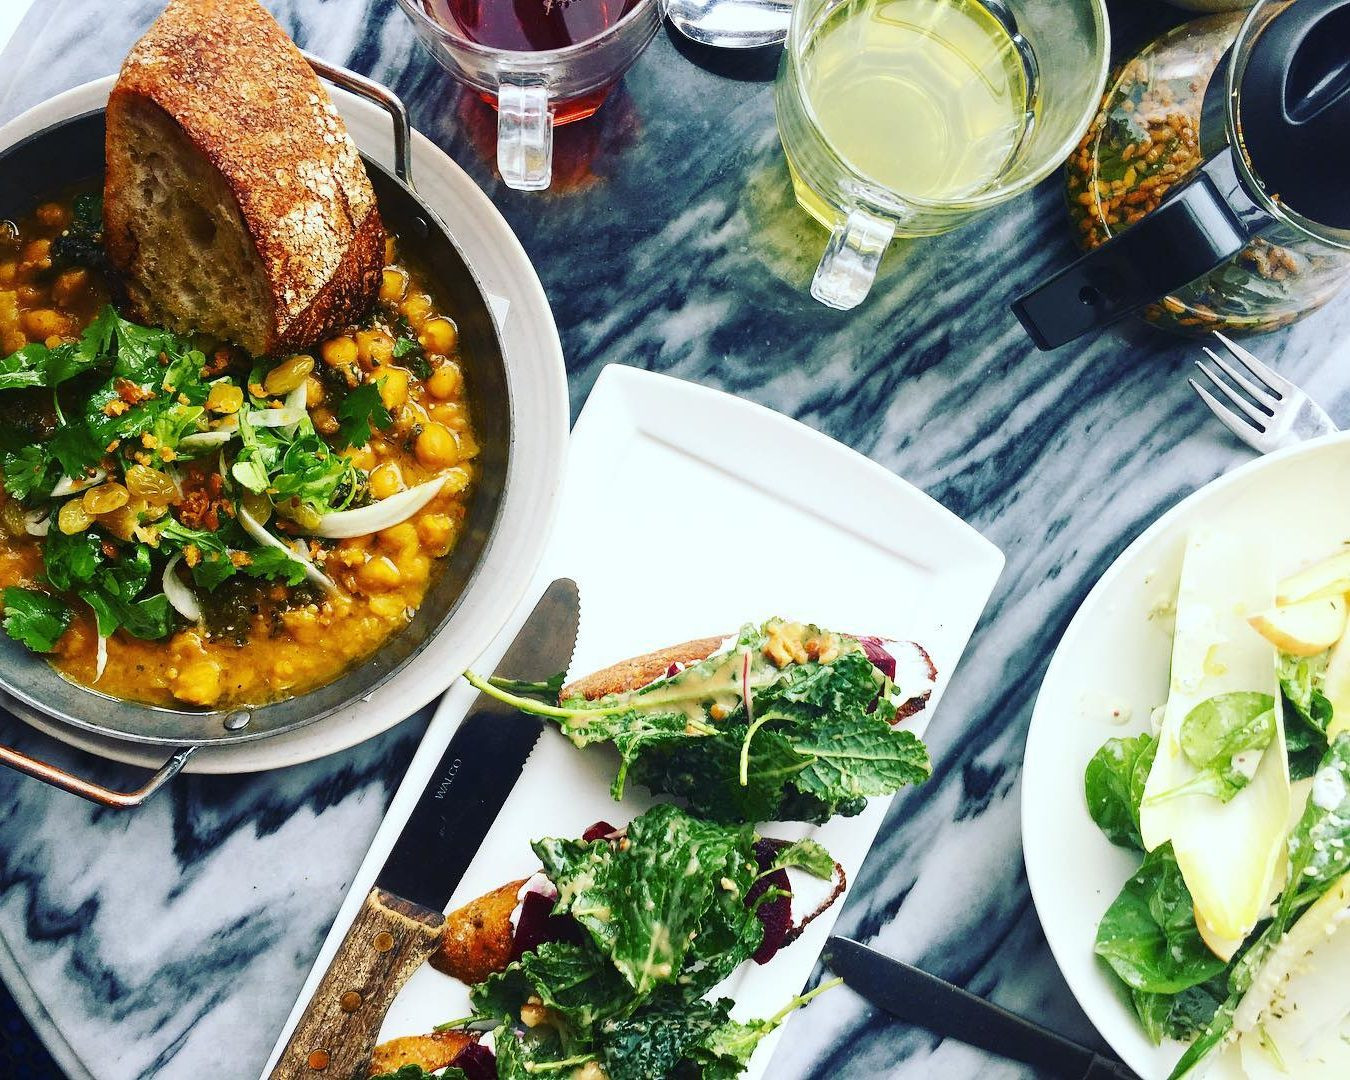 Healthy Breakfast Chicago  The Best Healthy Brunch Spots in Chicago Right Now